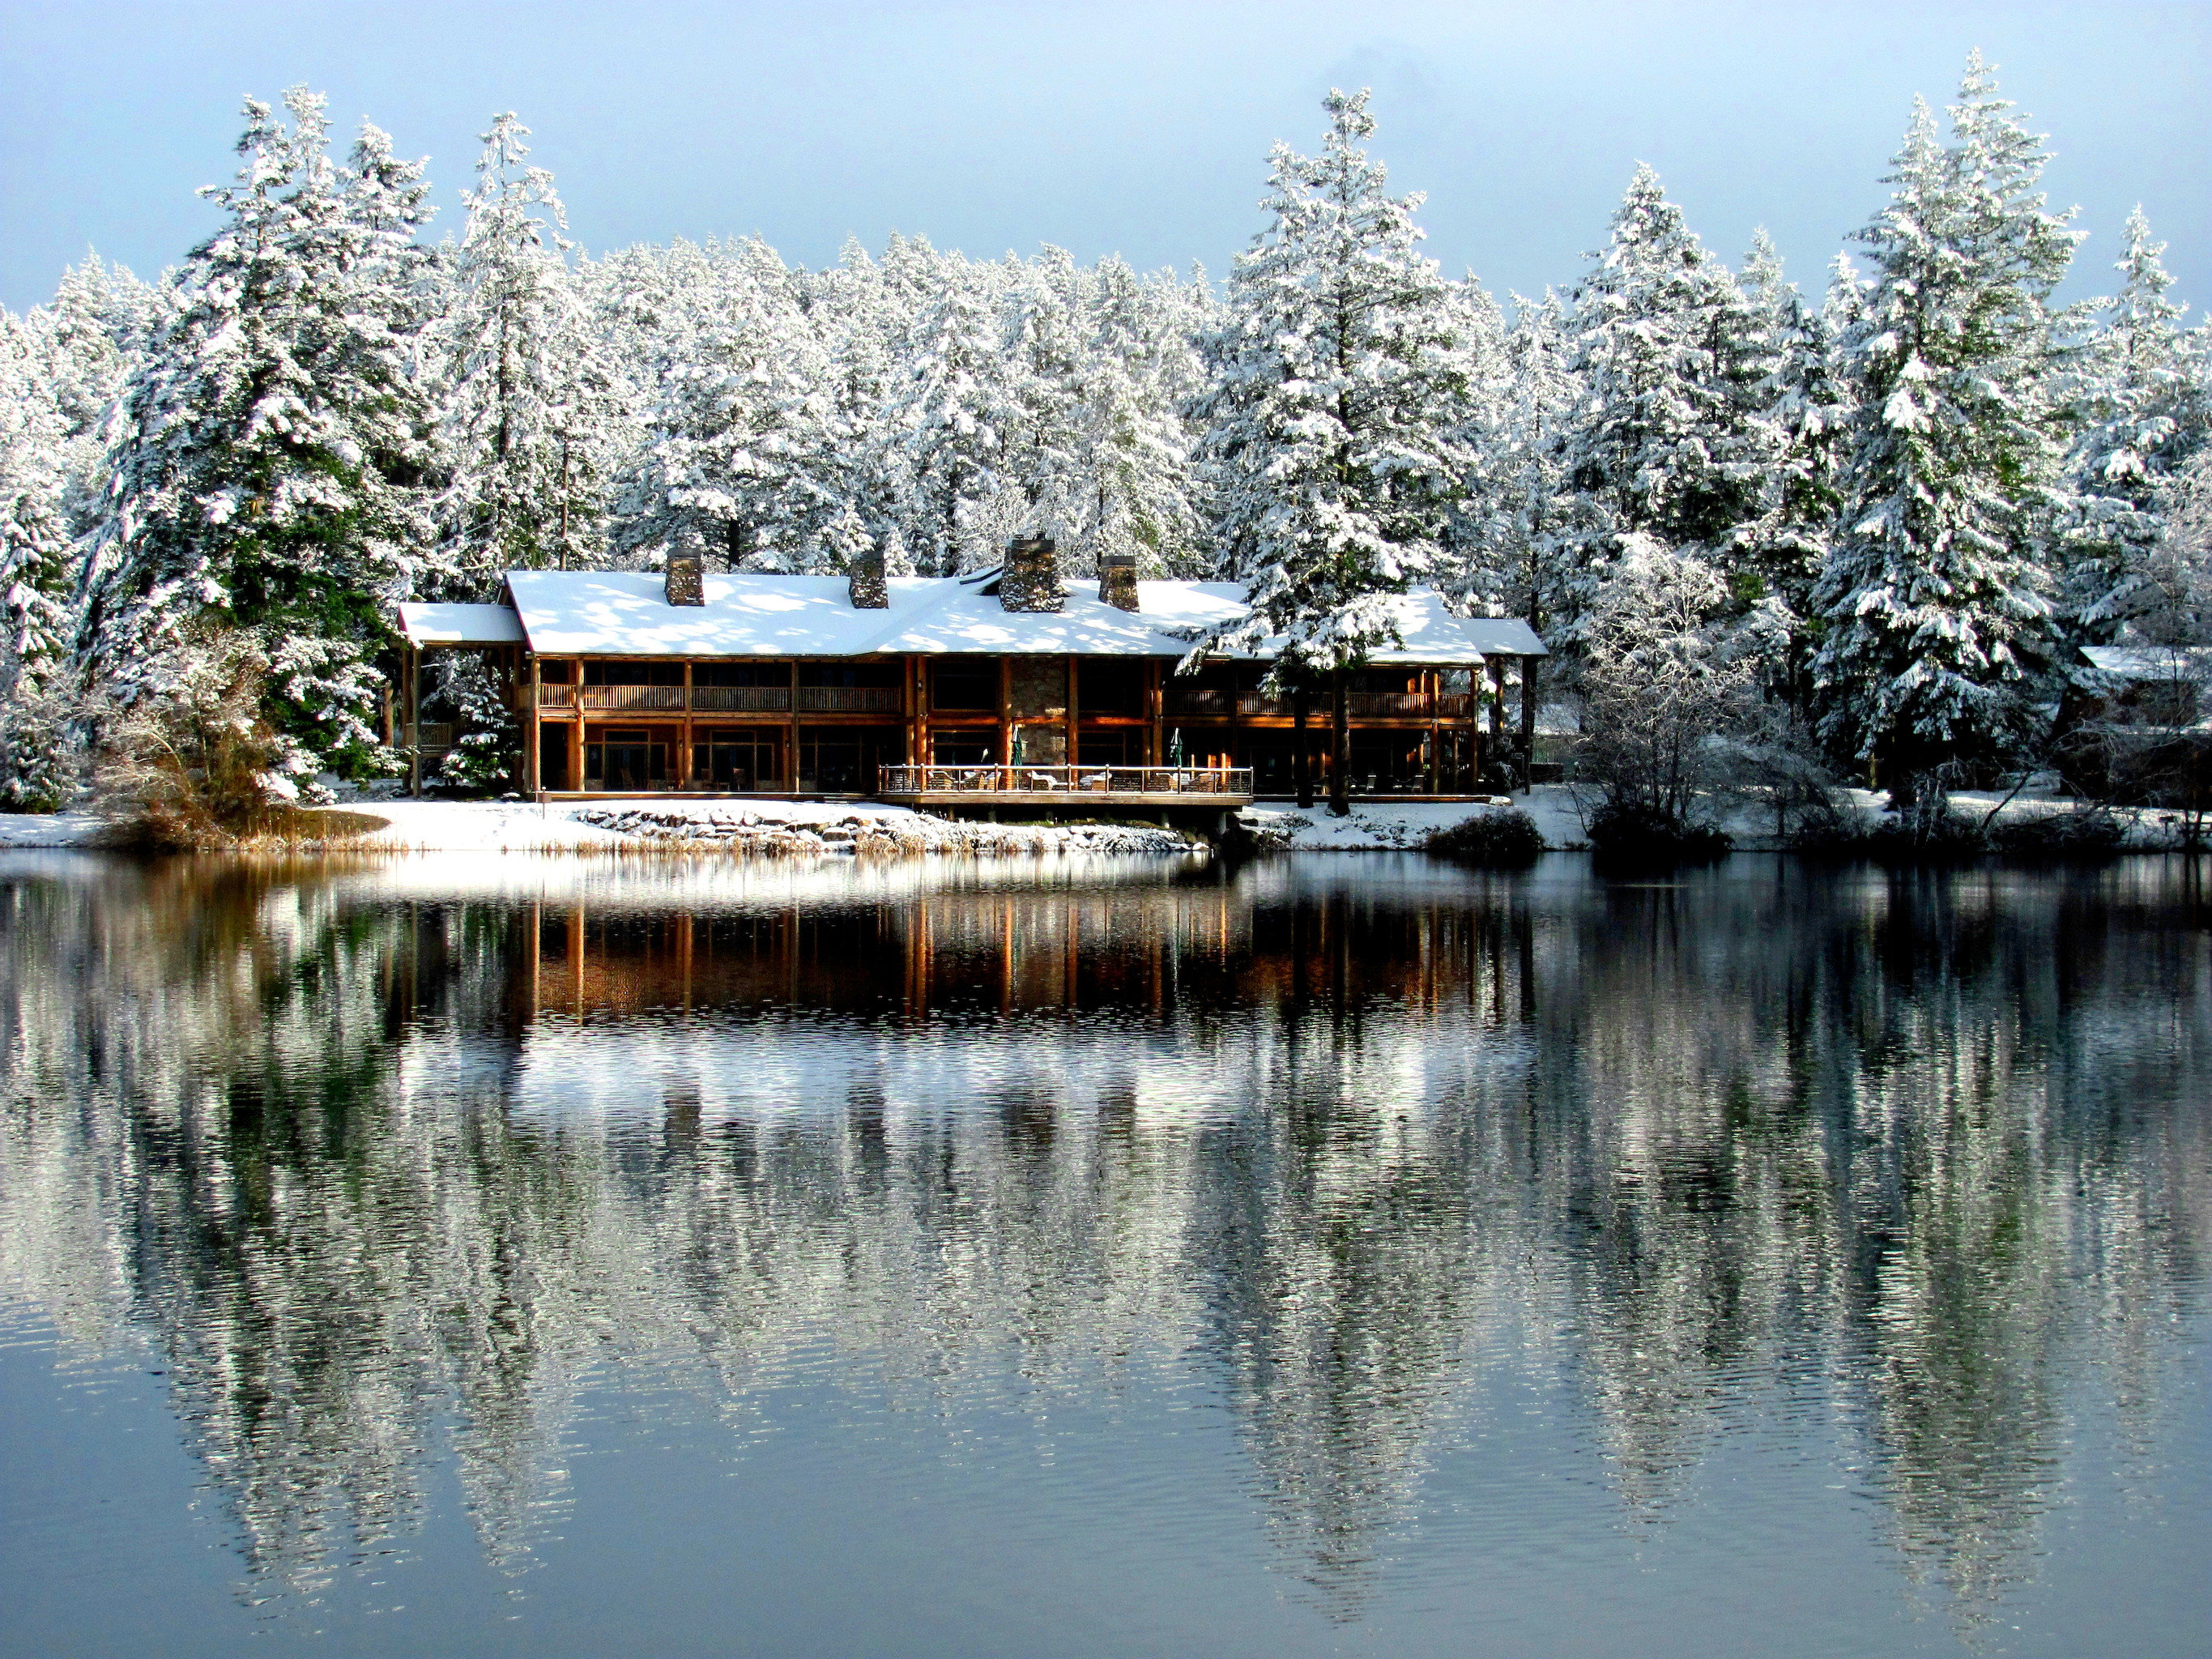 Exterior Lake Lodge Outdoors Resort Rustic Scenic views sky water tree Nature Winter pond season snow plant woody plant flower surrounded traveling day